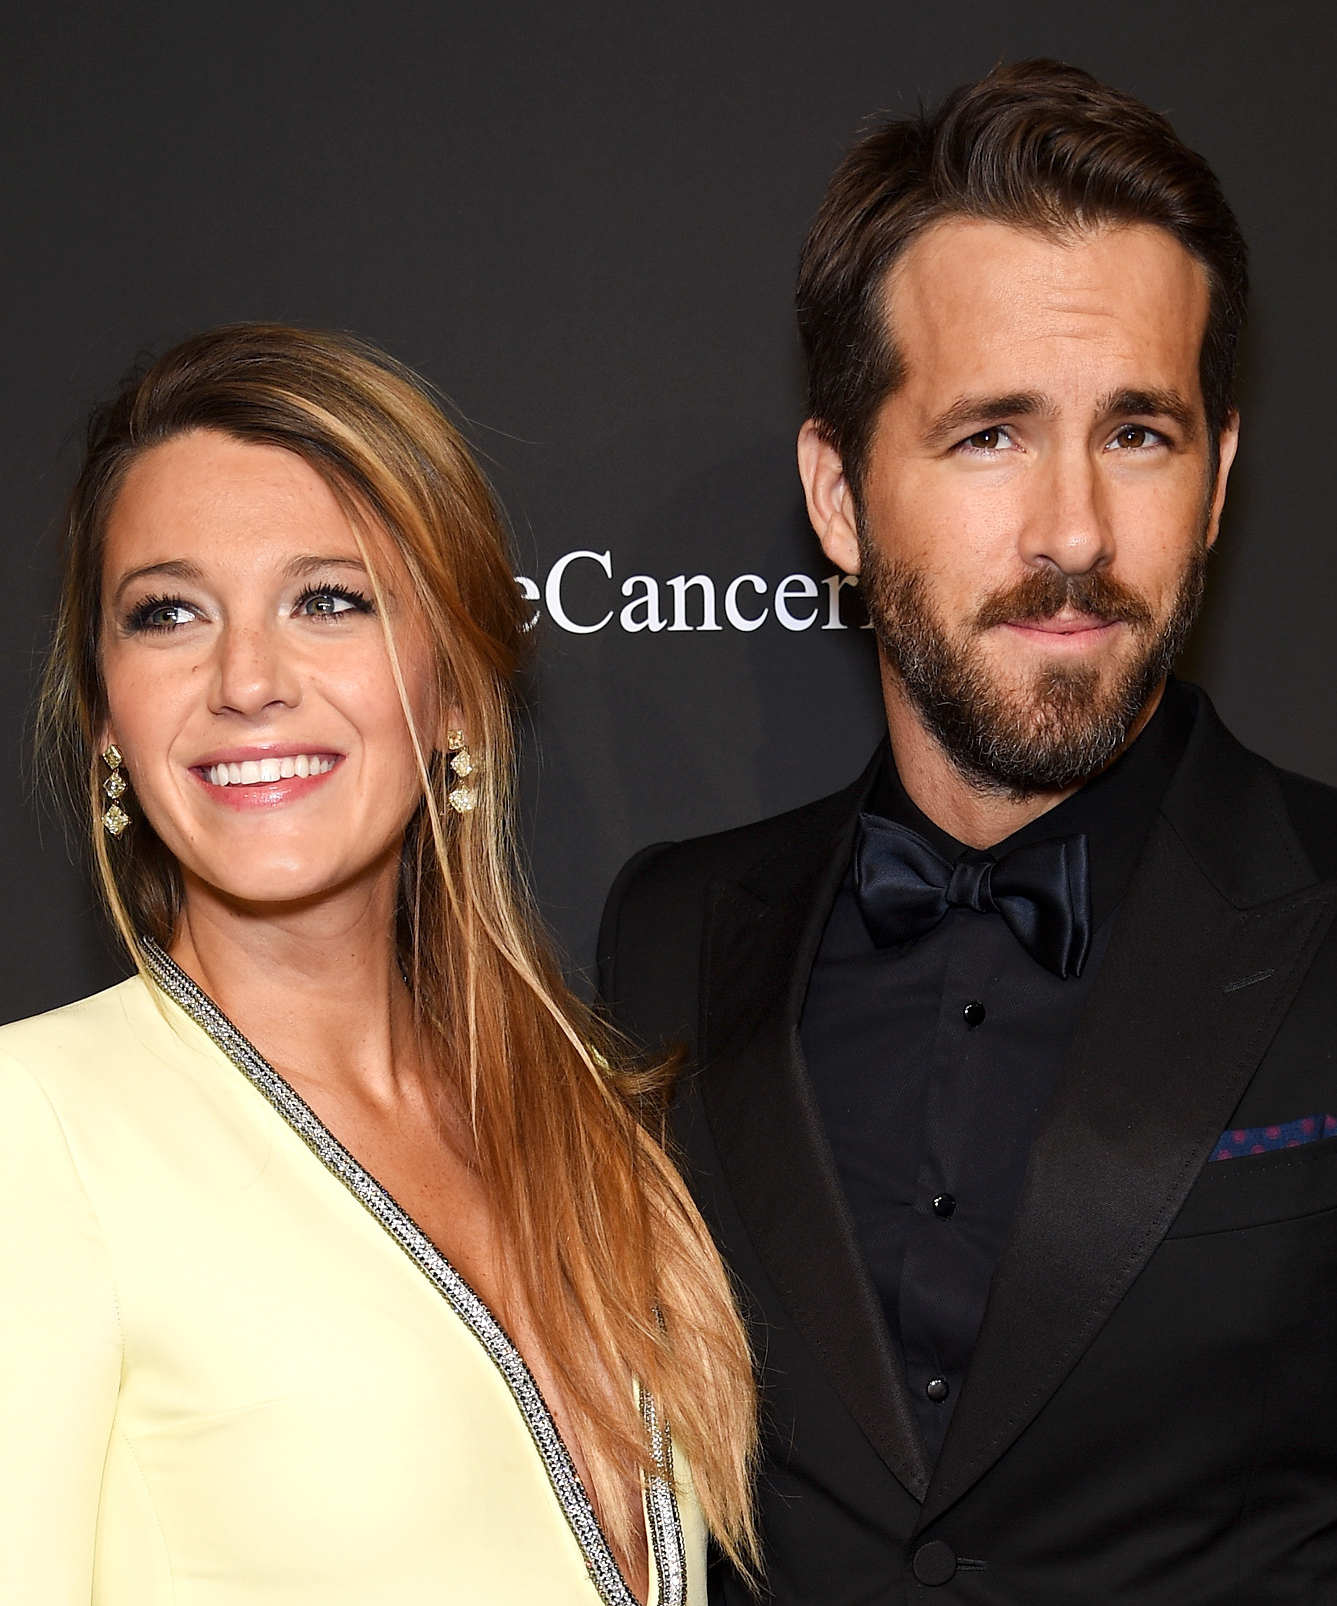 Actress Blake Lively (L) and Ryan Reynolds attend Angel Ball 2014 hosted by Gabrielle's Angel Foundation at Cipriani Wall Street on October 20, 2014 in New York City.